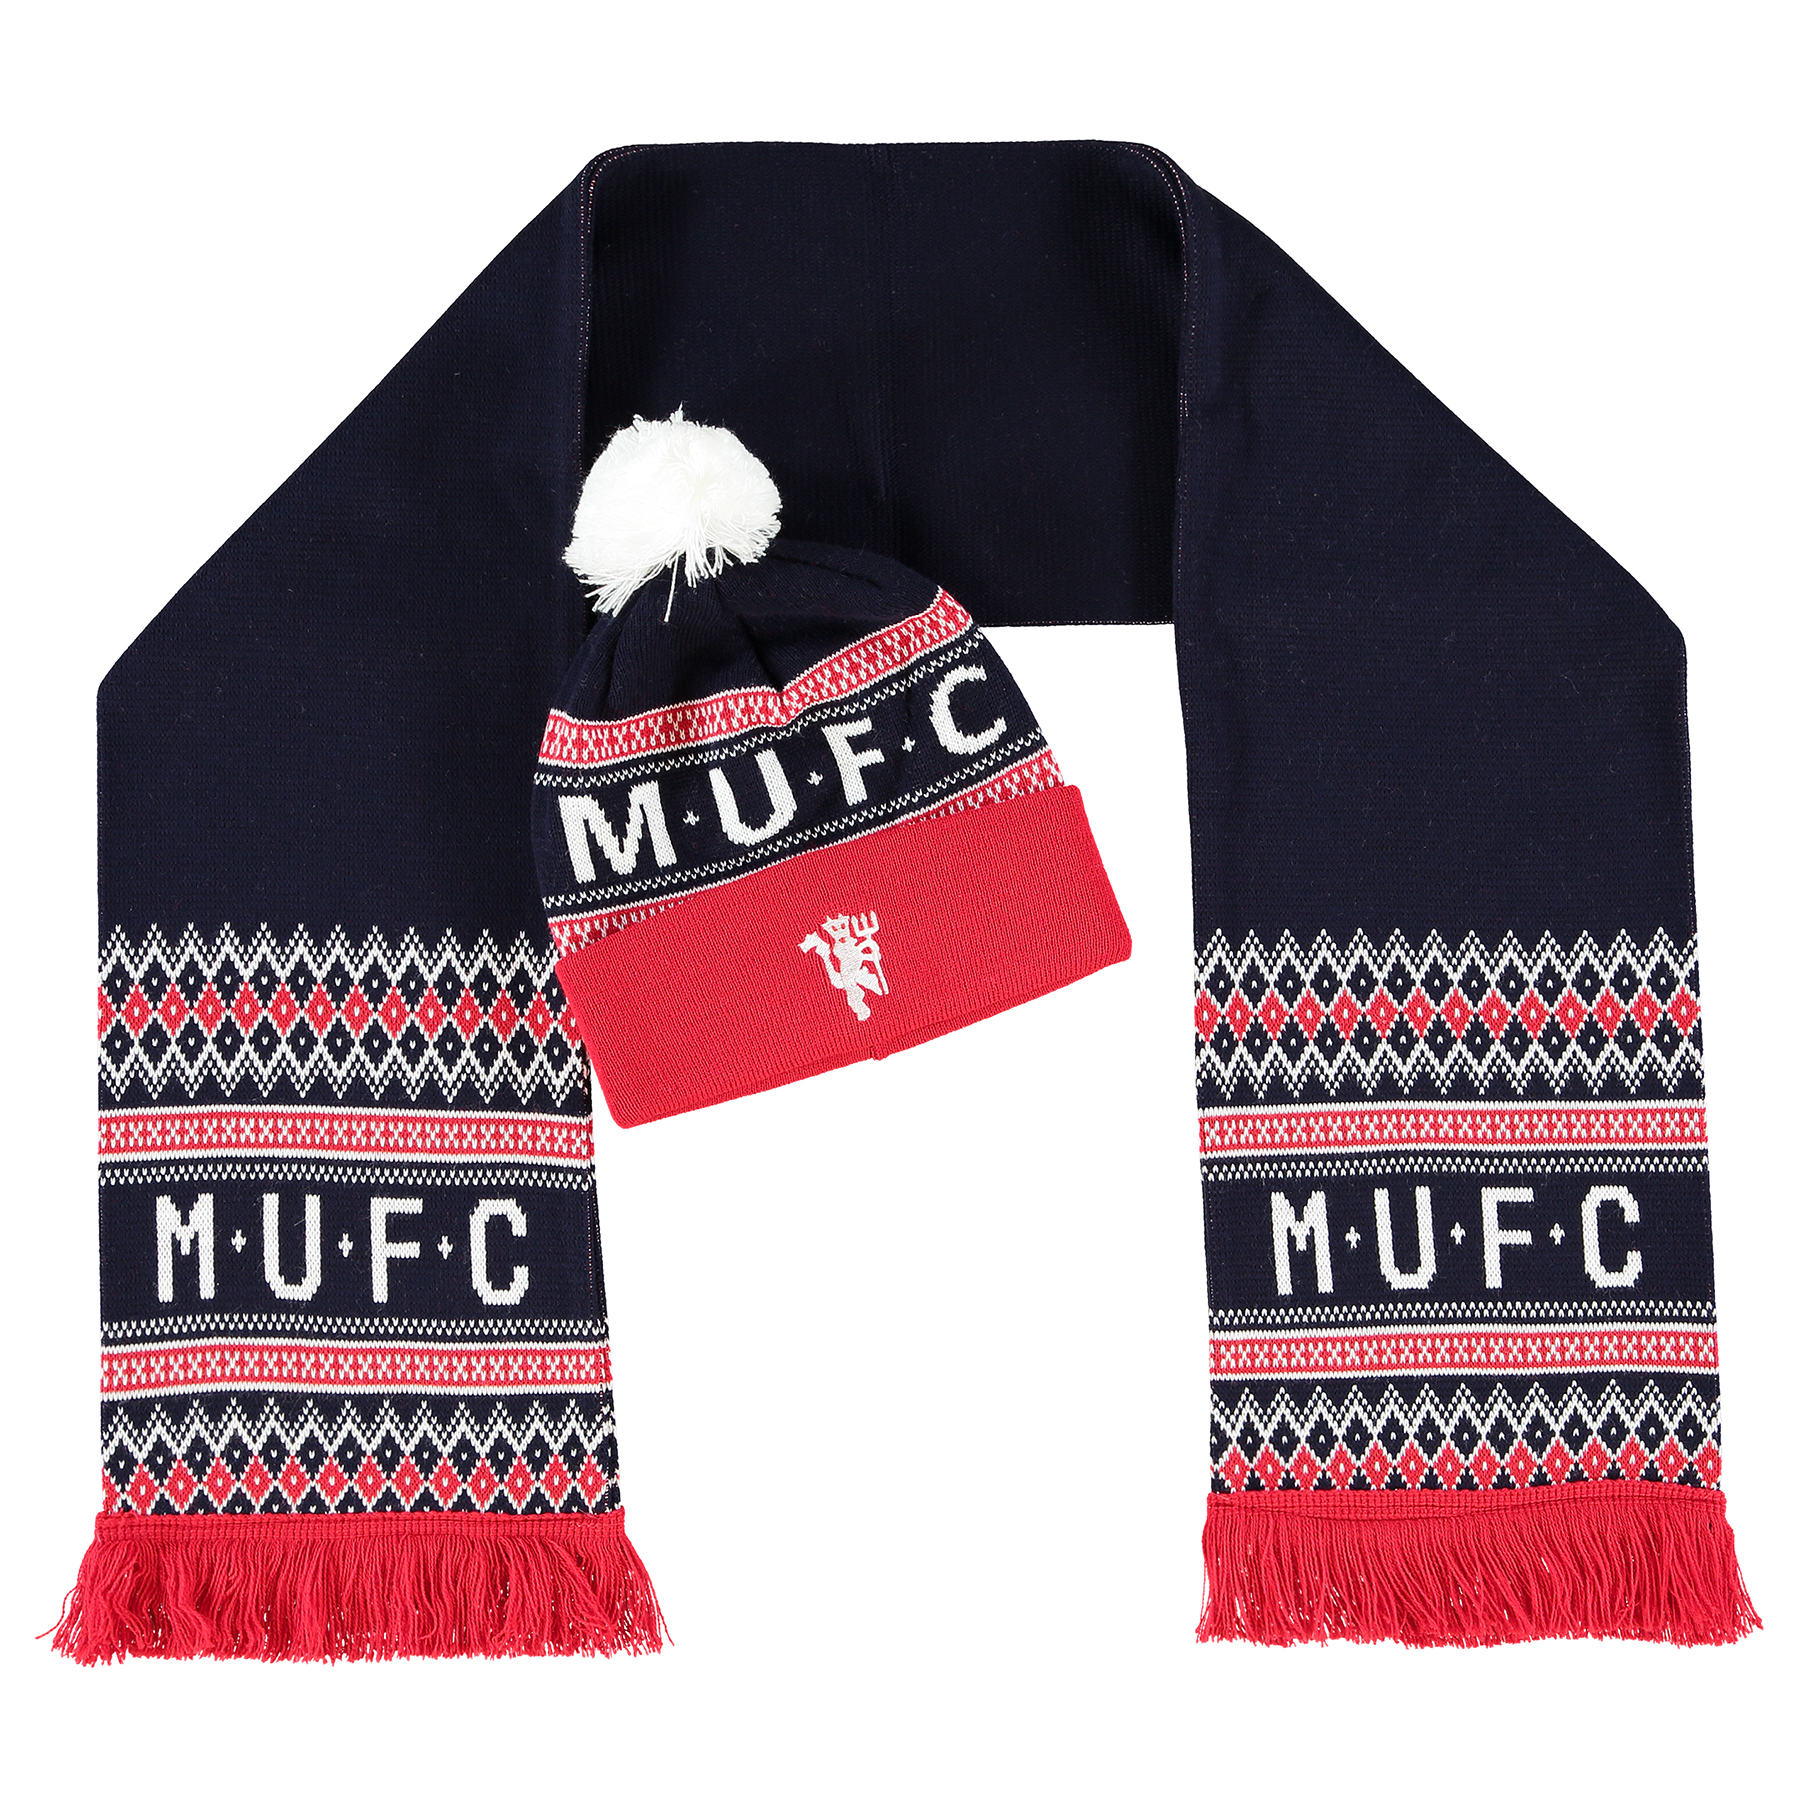 Manchester United Hat and Scarf Set - Navy/Red - Adult